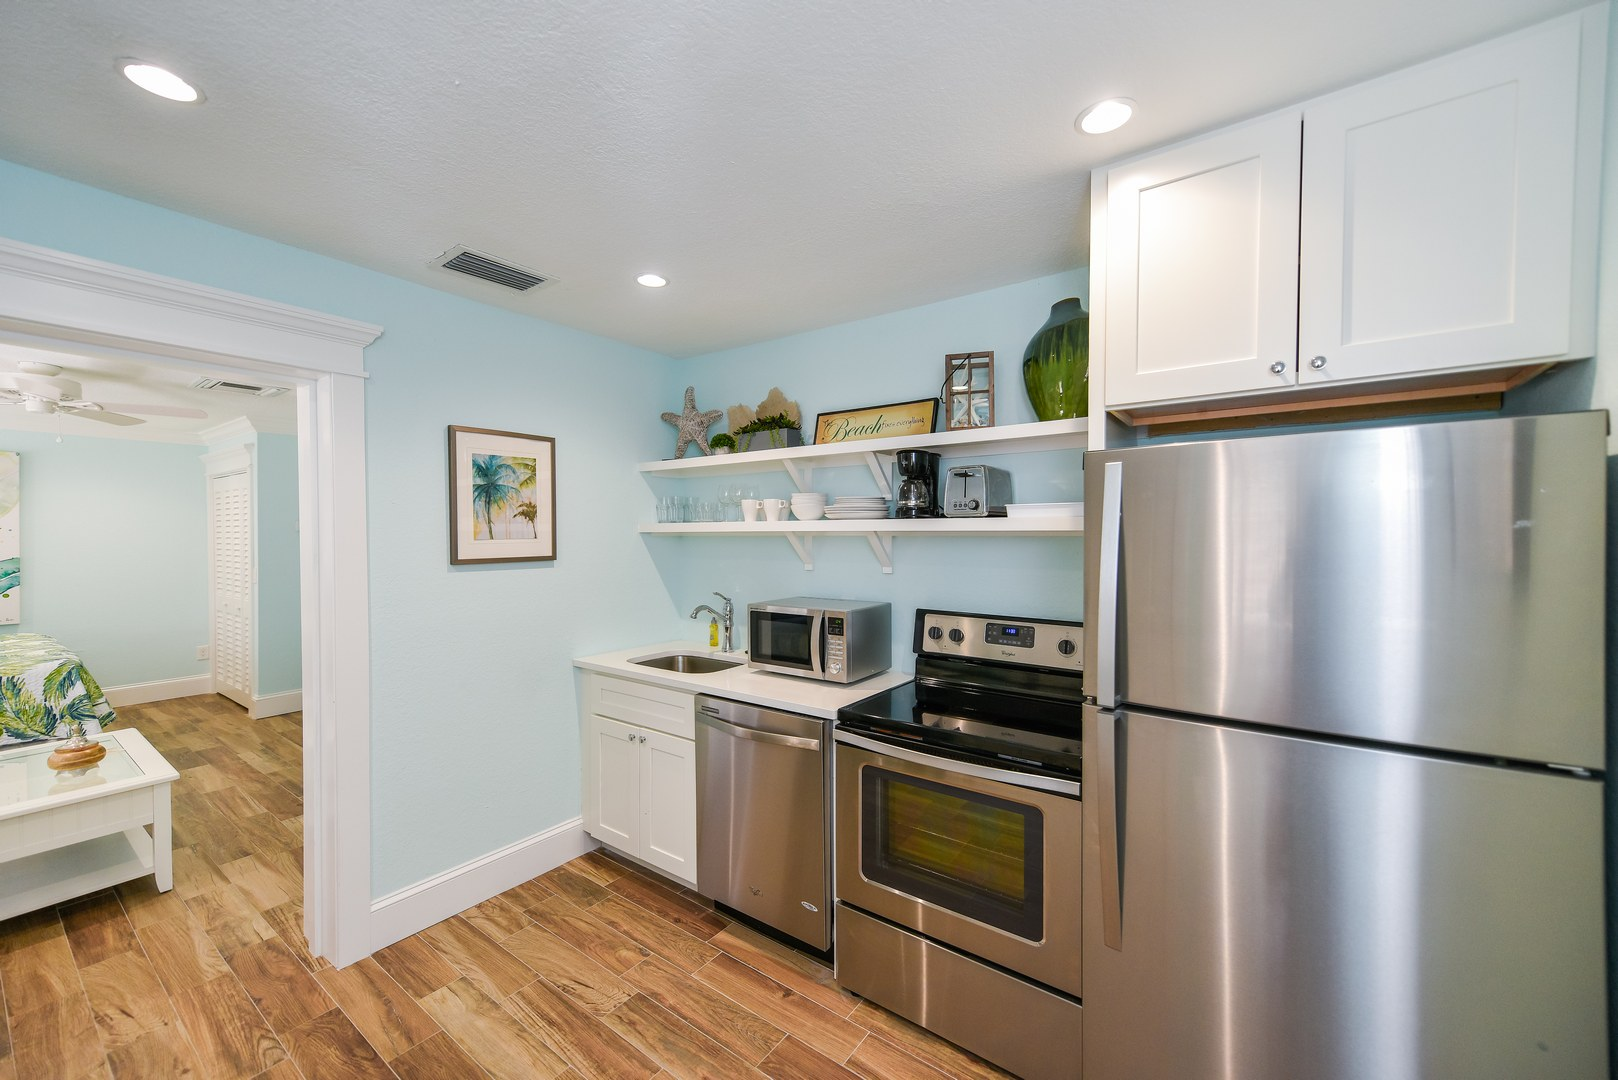 Stainless Steel Appliance add to this updated space